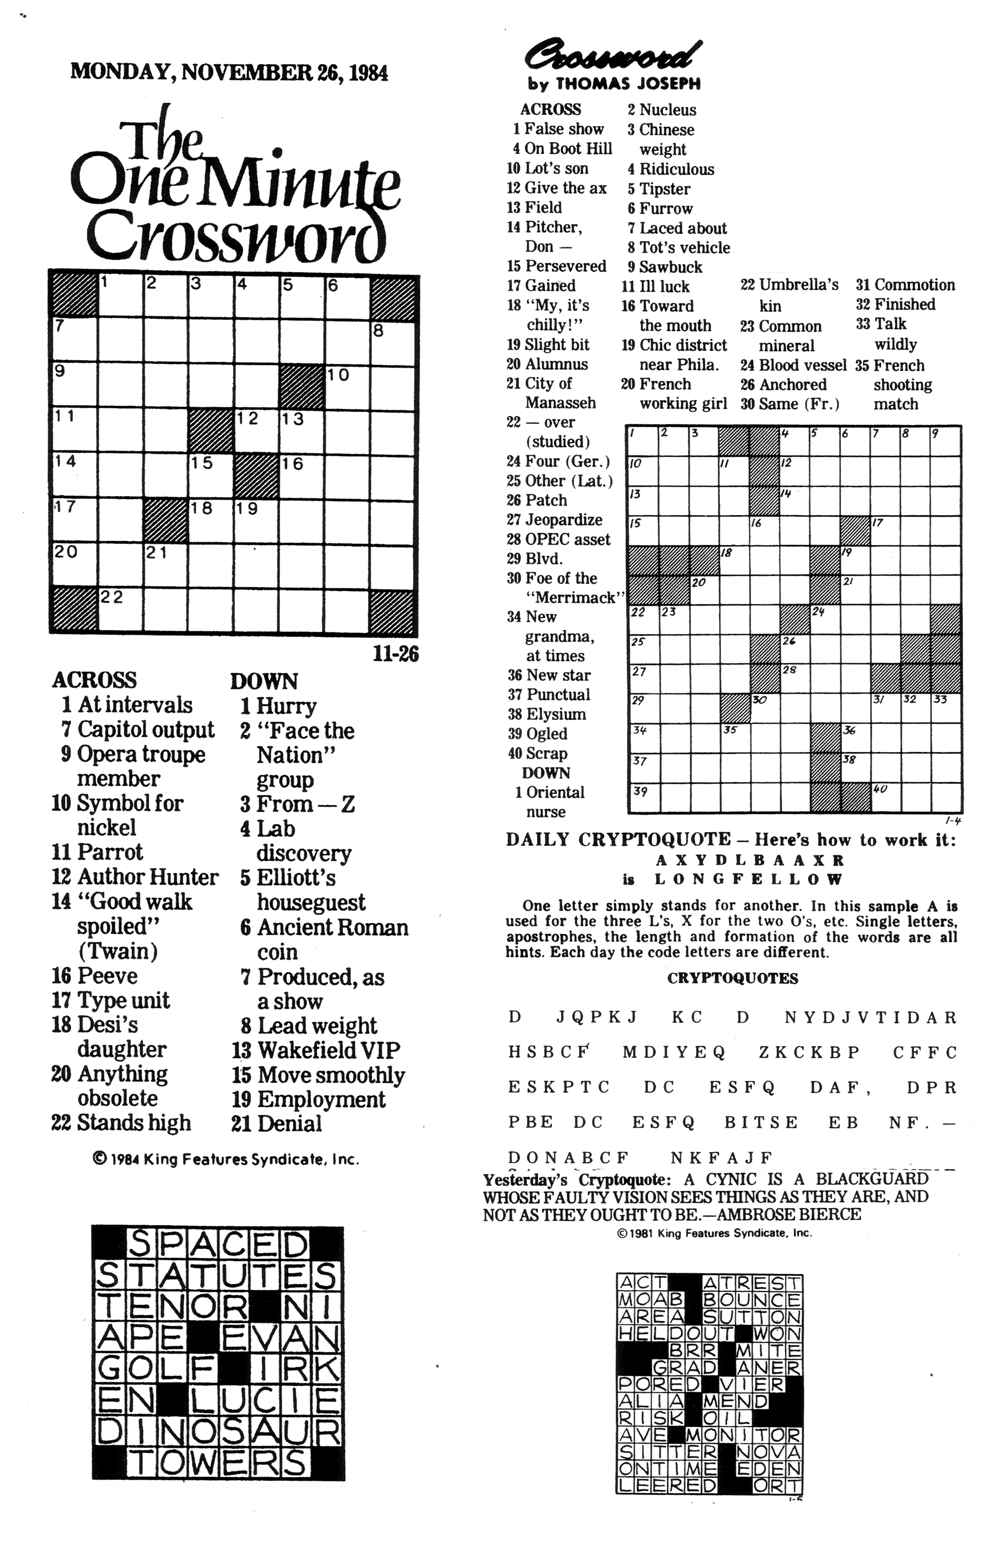 graphic relating to Printable Thomas Joseph Crossword Puzzle for Today named Comics Kingdom - Request the Archivist: CROSSWORD PUZZLES - 2015